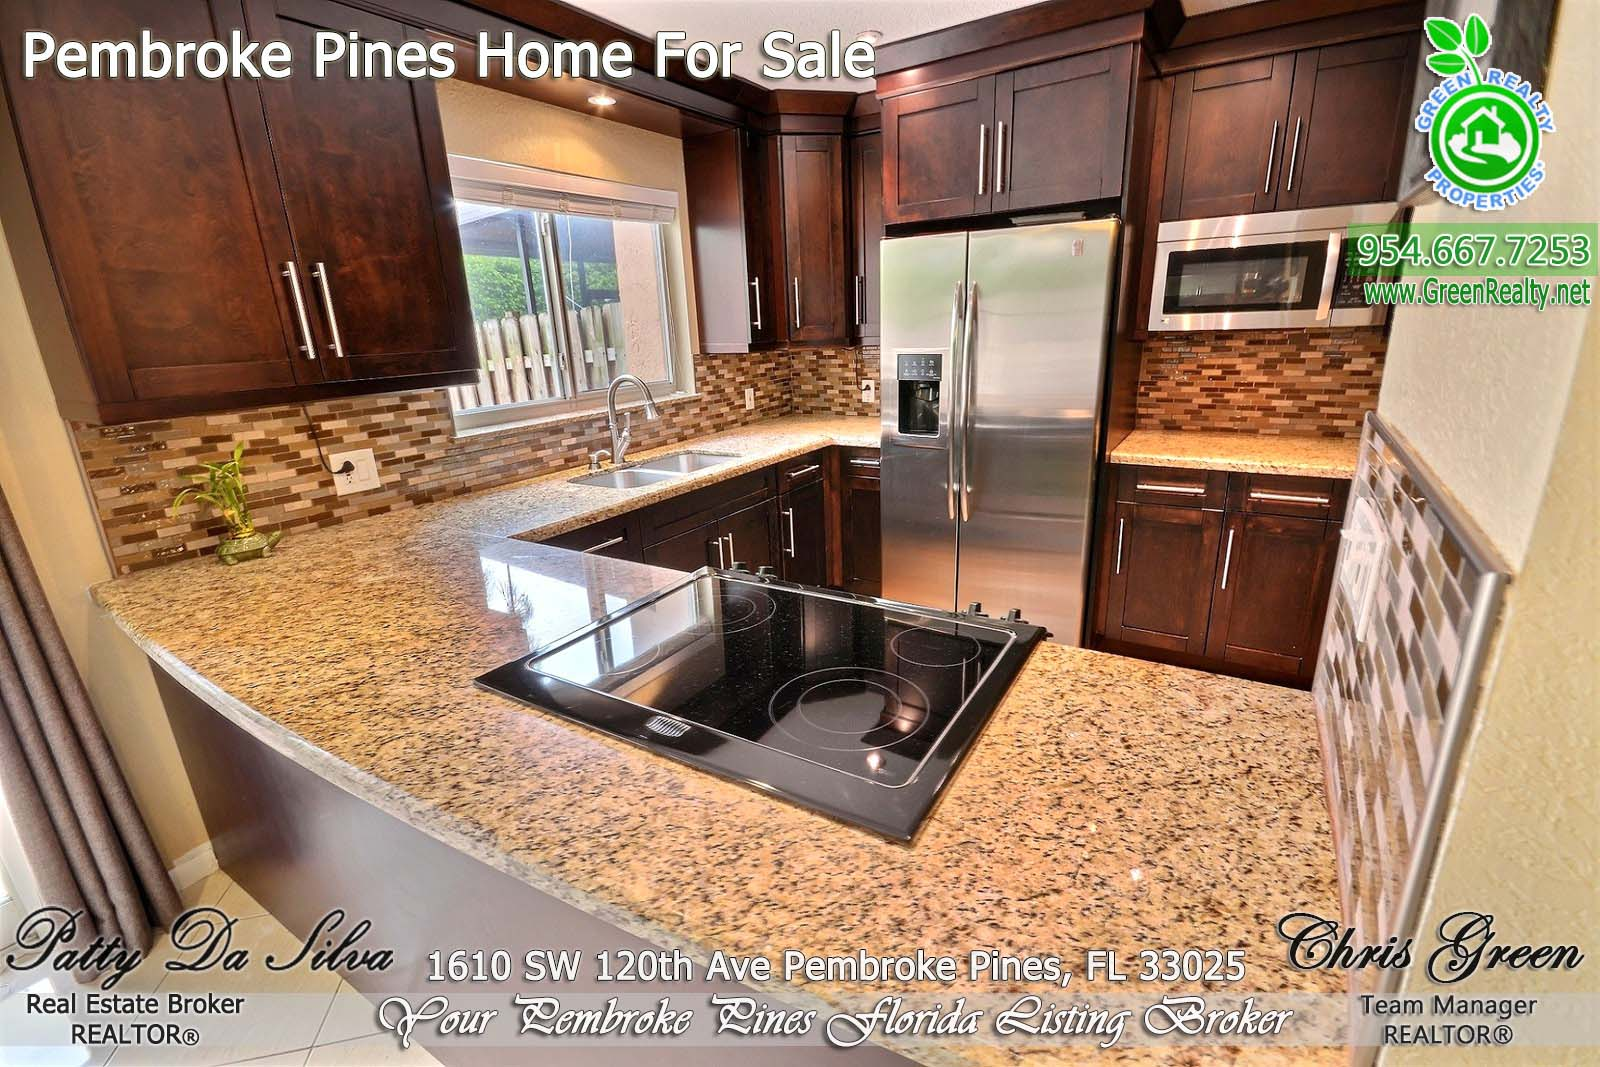 6 Las Palmas at Pembroke Pines Homes For Sale (3)